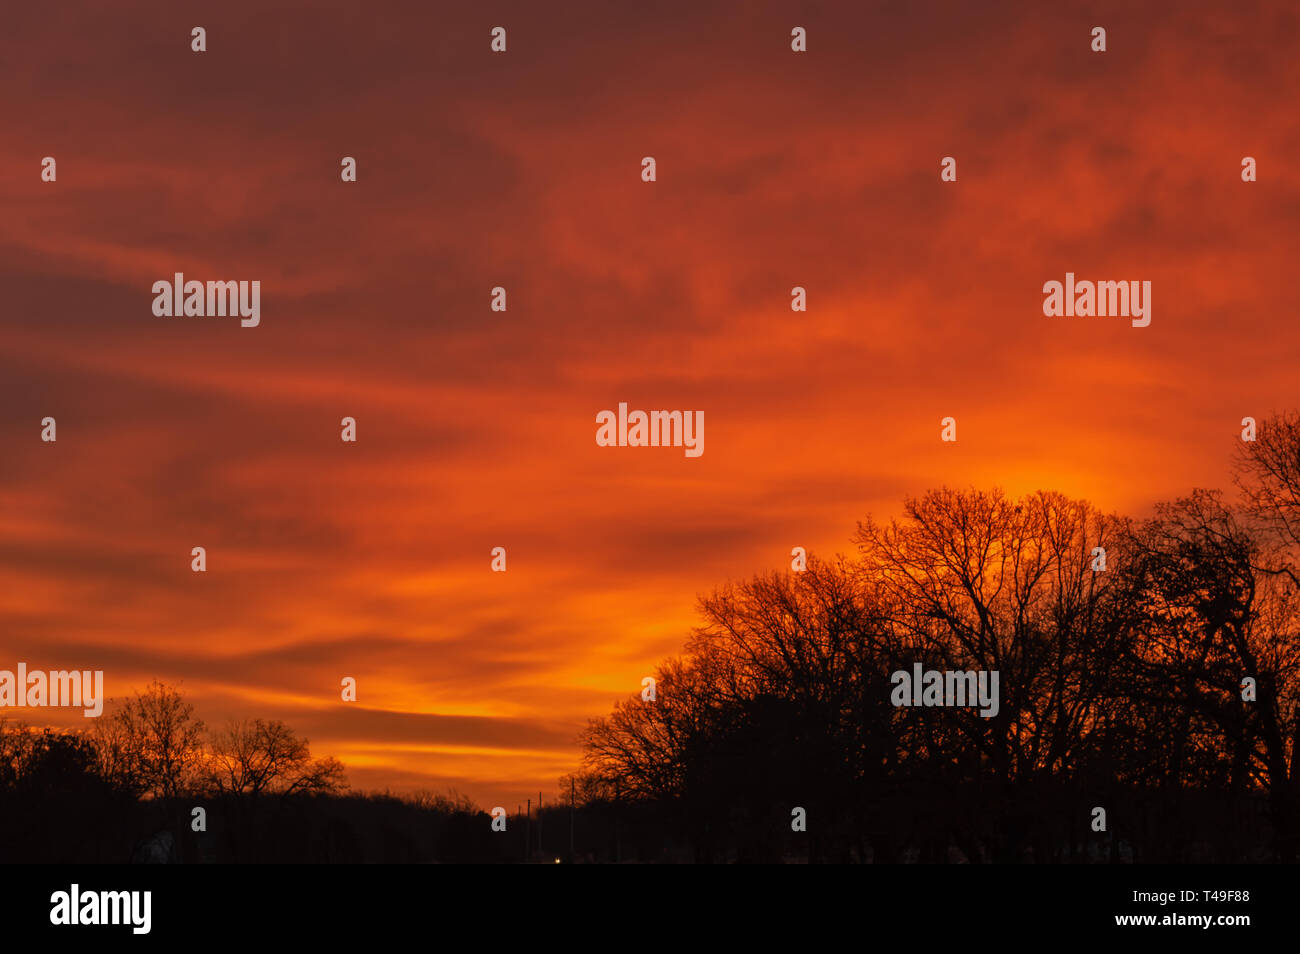 Write a message in the sky against this pretty yellow sky backdrop with silhouette tree tops. Stock Photo